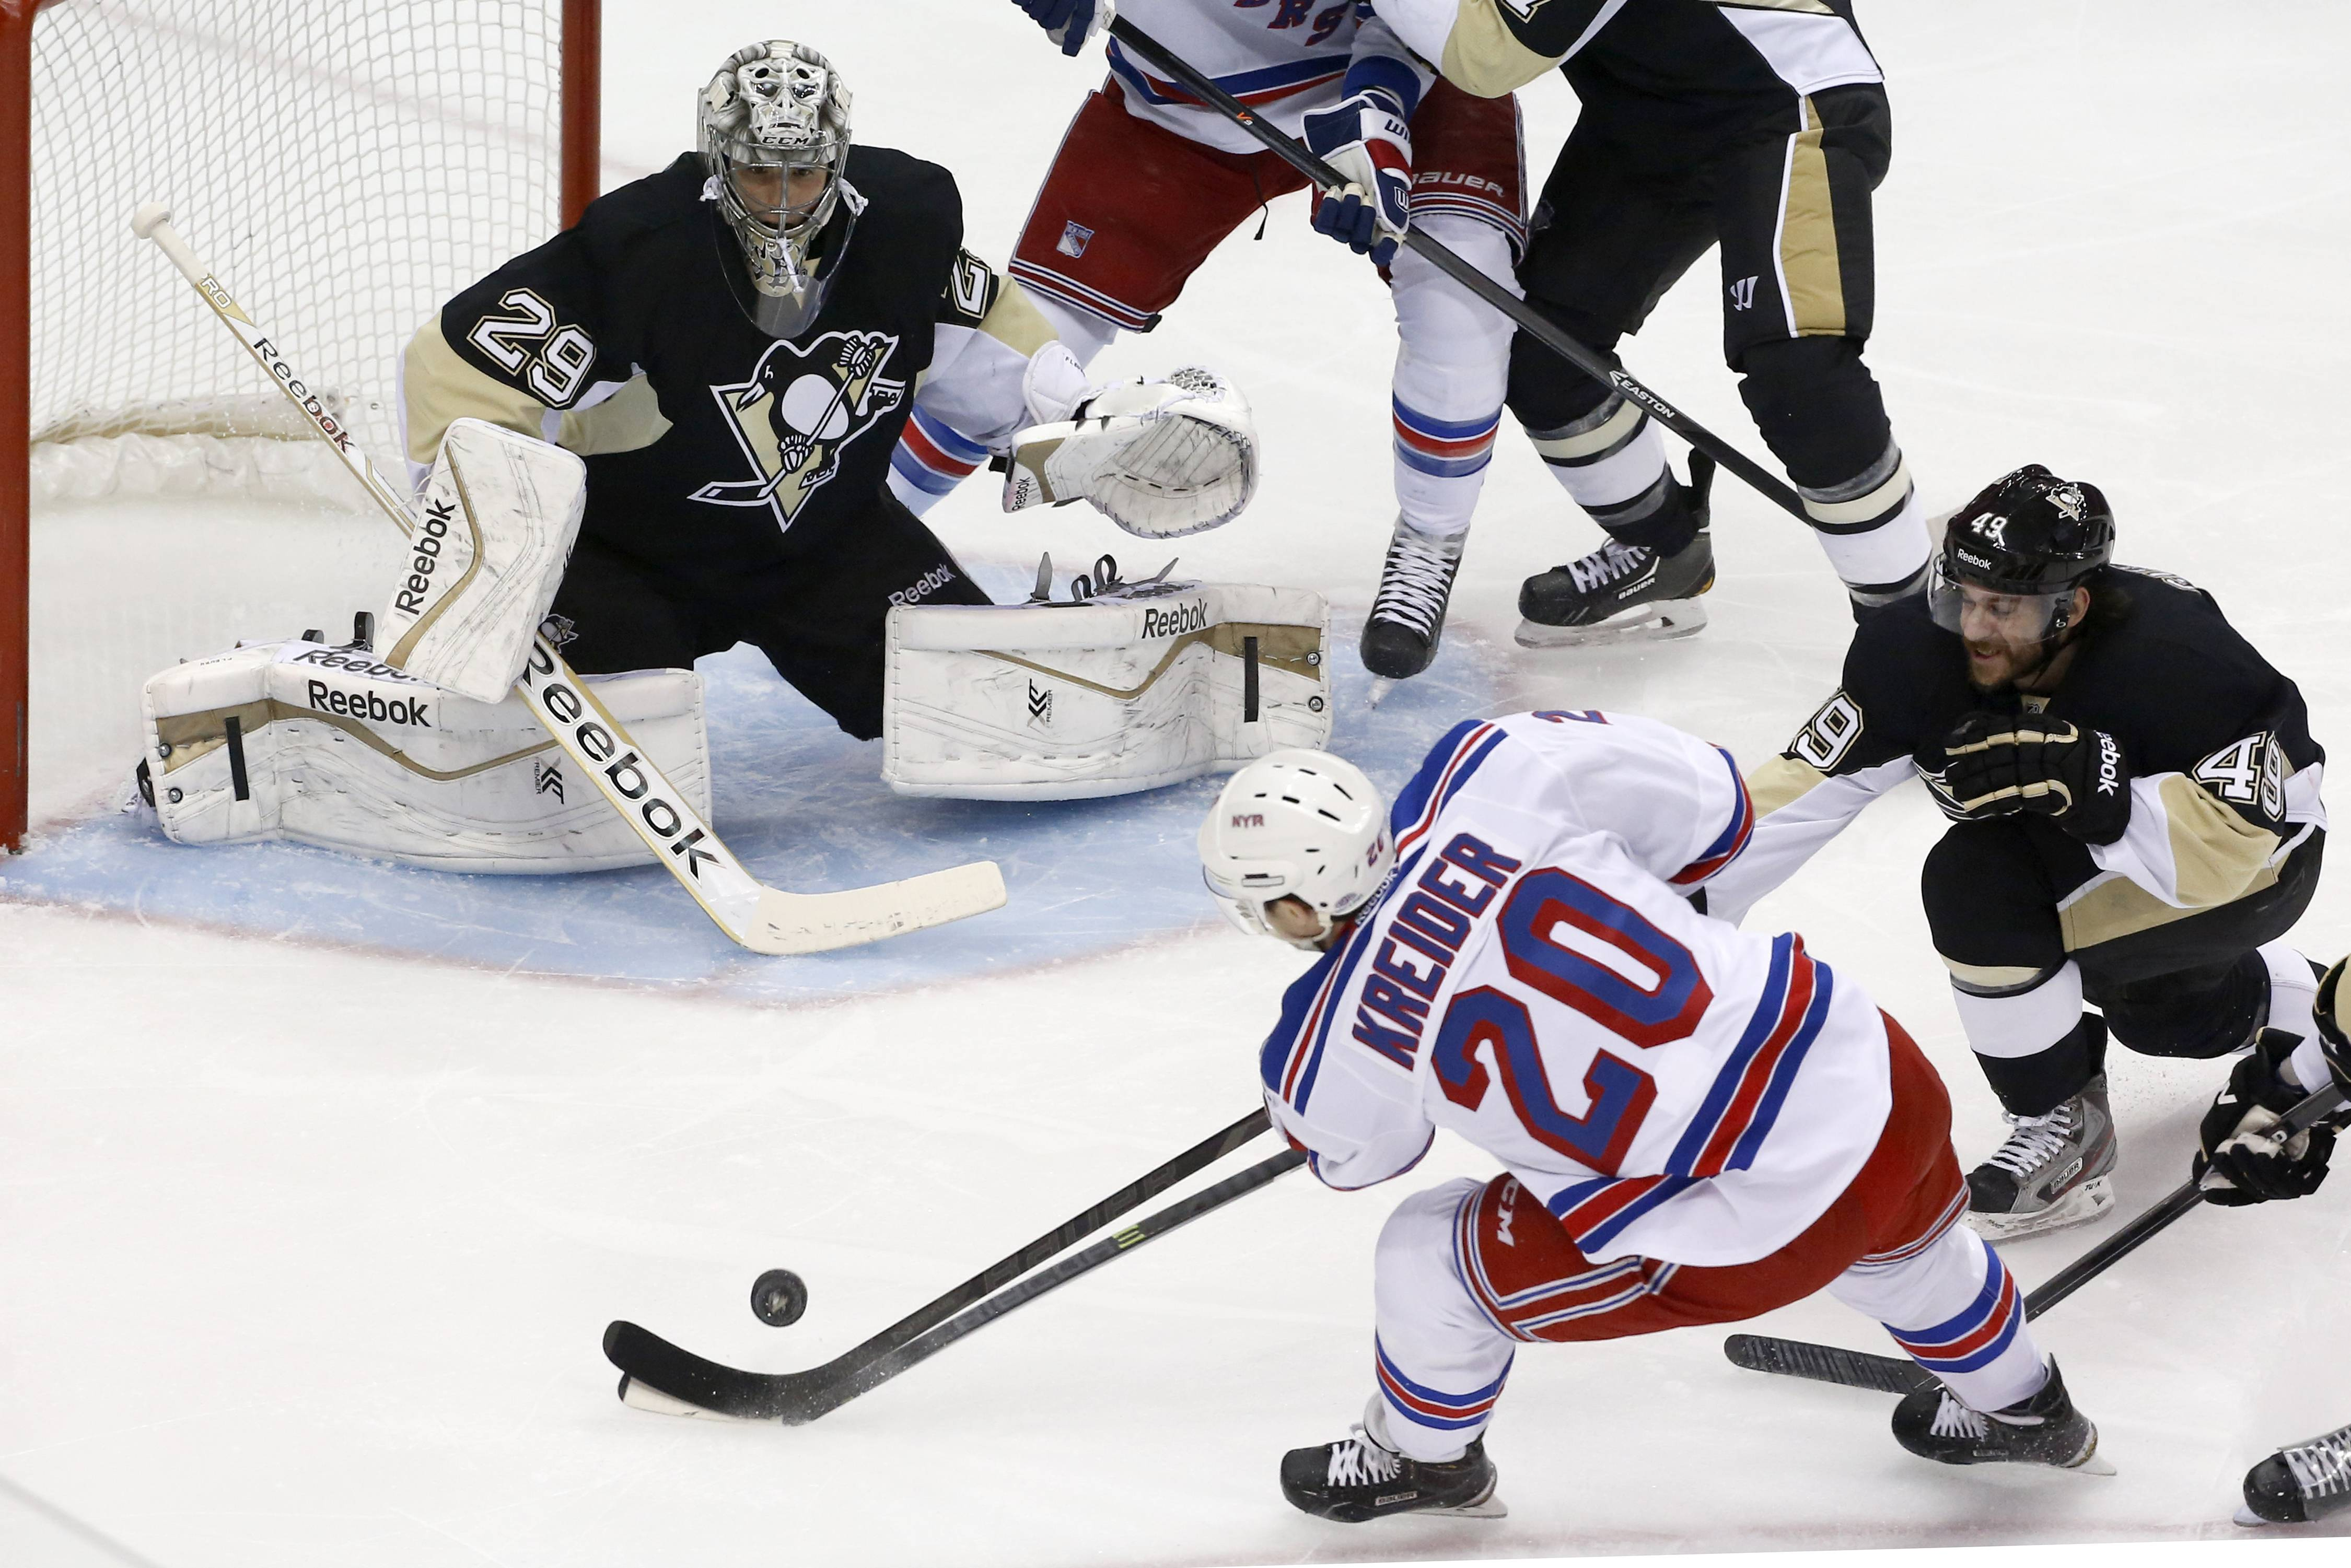 New York Rangers' Chris Kreider (20) cannot get a shot past Pittsburgh Penguins goalie Marc-Andre Fleury (29) and Brian Gibbons (49) in the first period of Game 5 of a second-round NHL playoff hockey series in Pittsburgh, Friday, May 9, 2014.